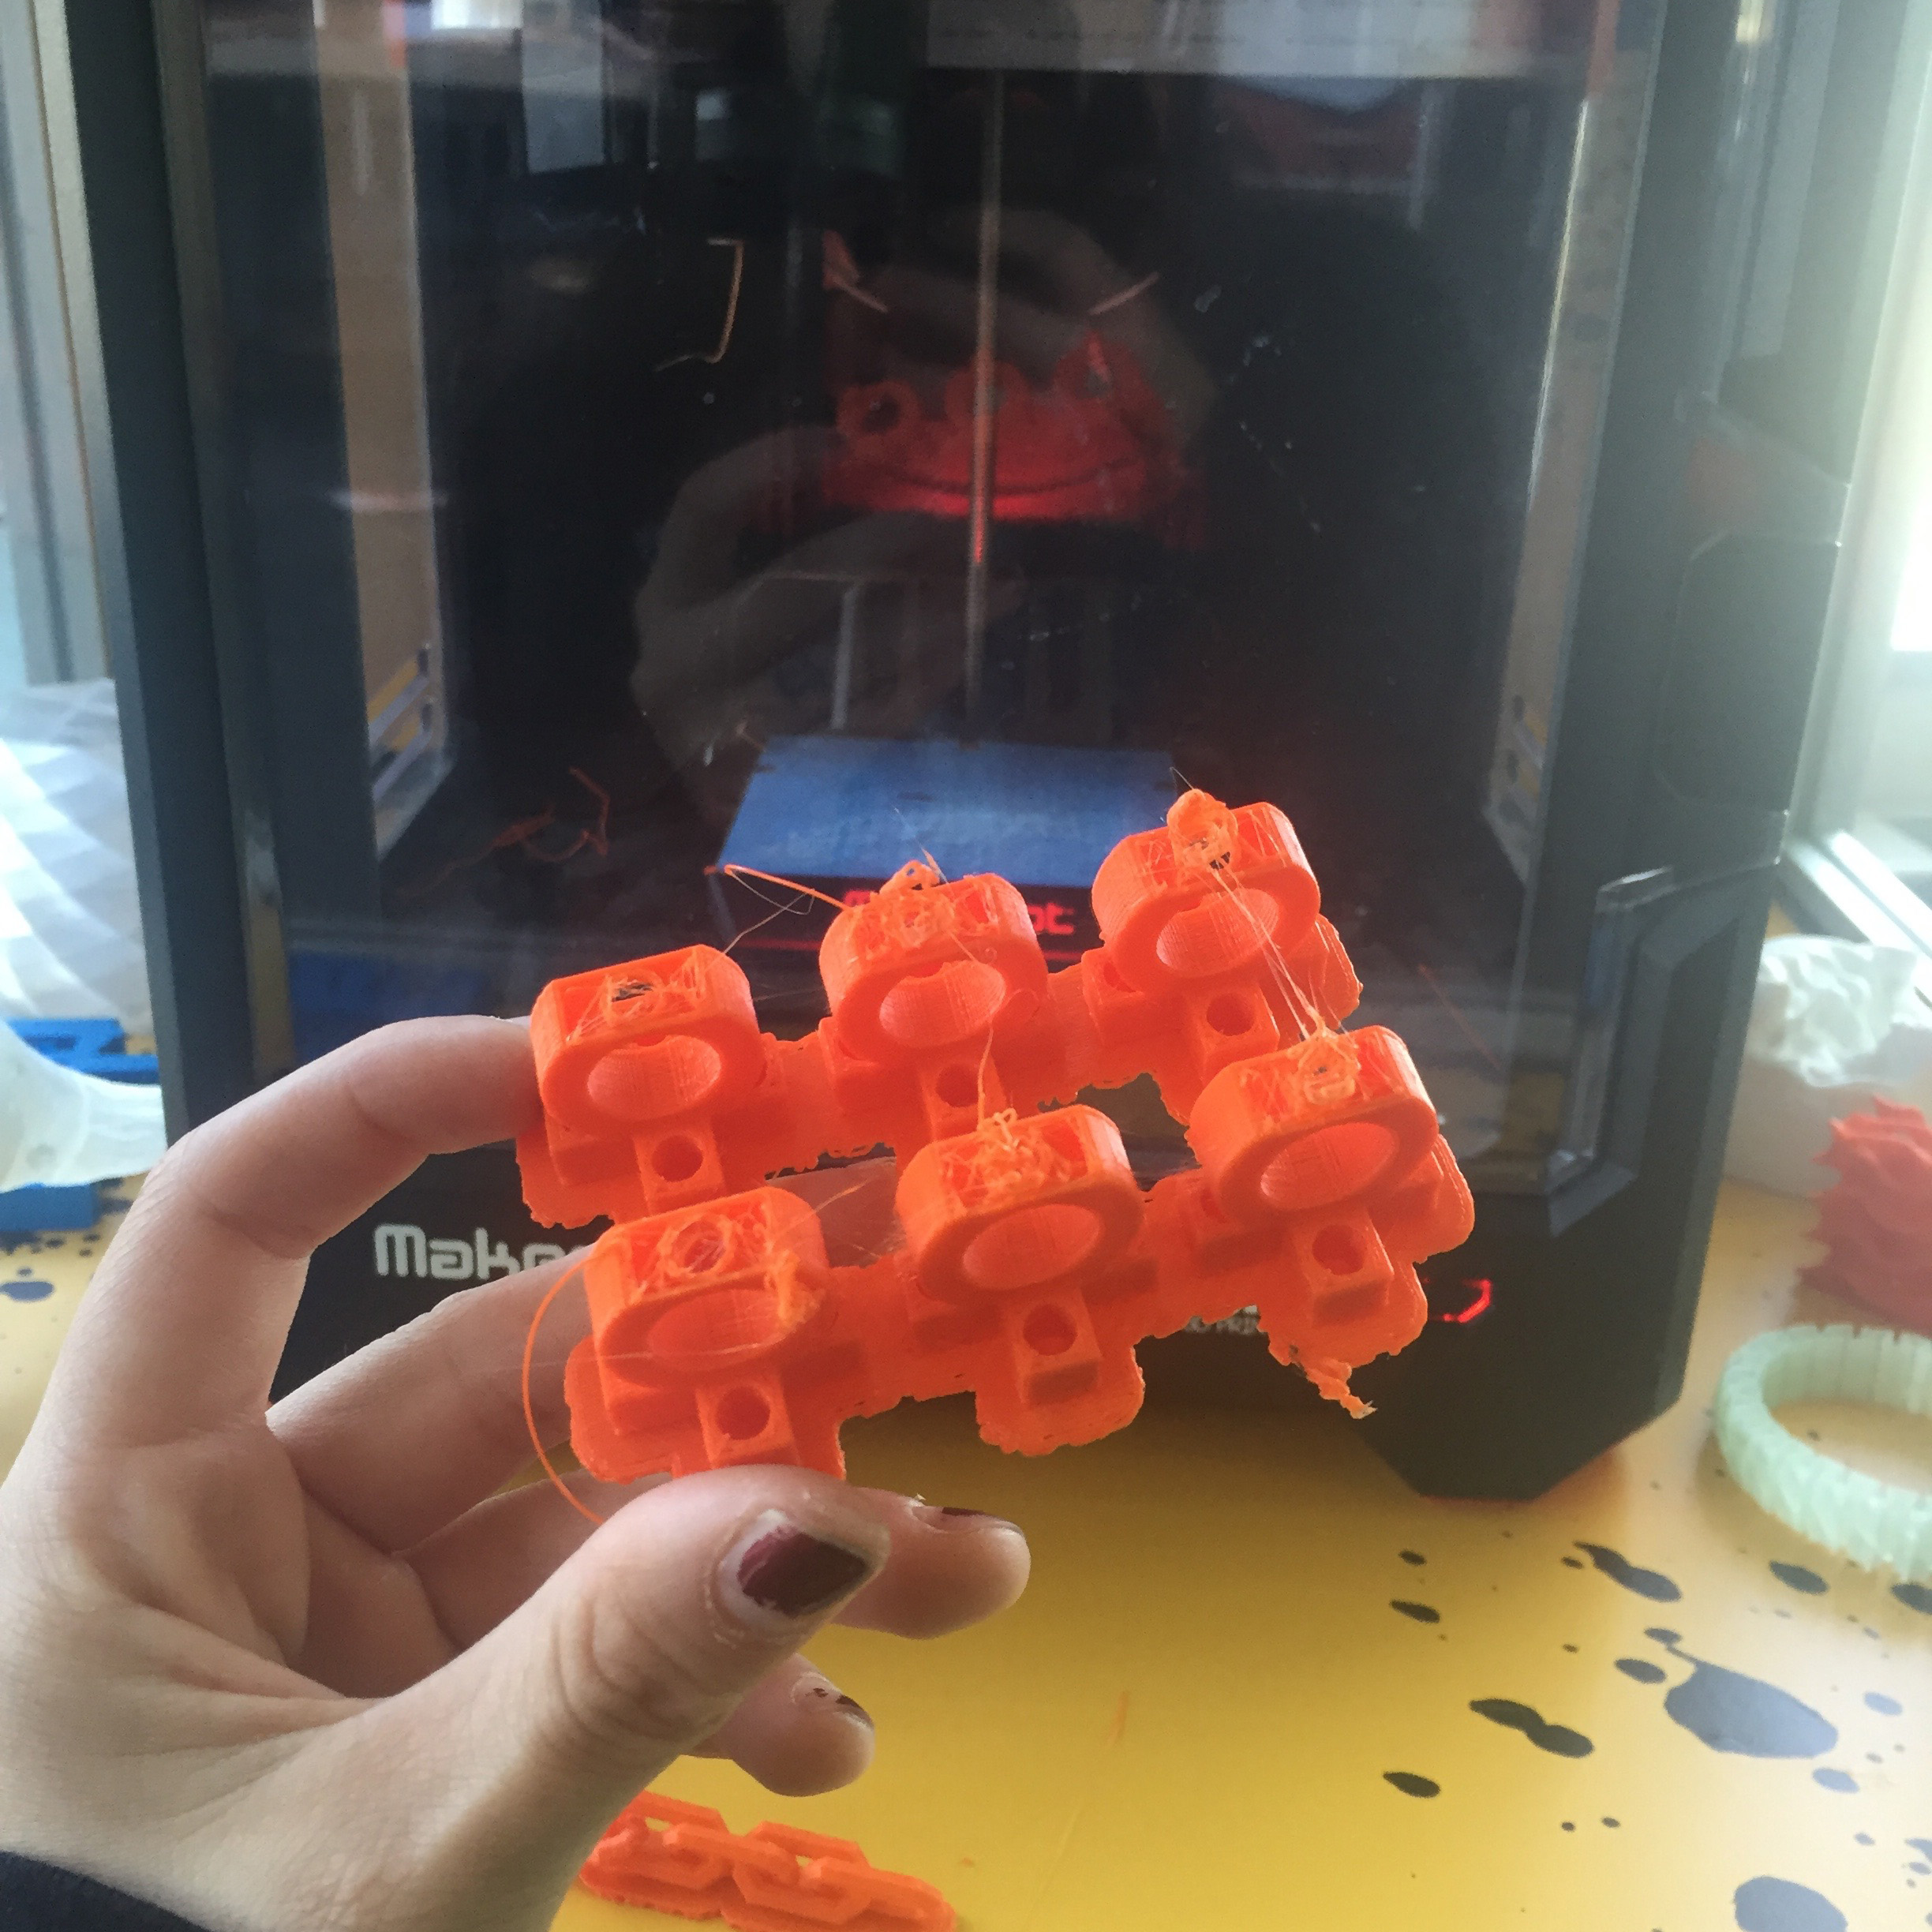 An example of using an exhibit component (3D printing station pictured previously) to create more exhibit components. These pieces were printed for use in an activity called Musical Linkages.